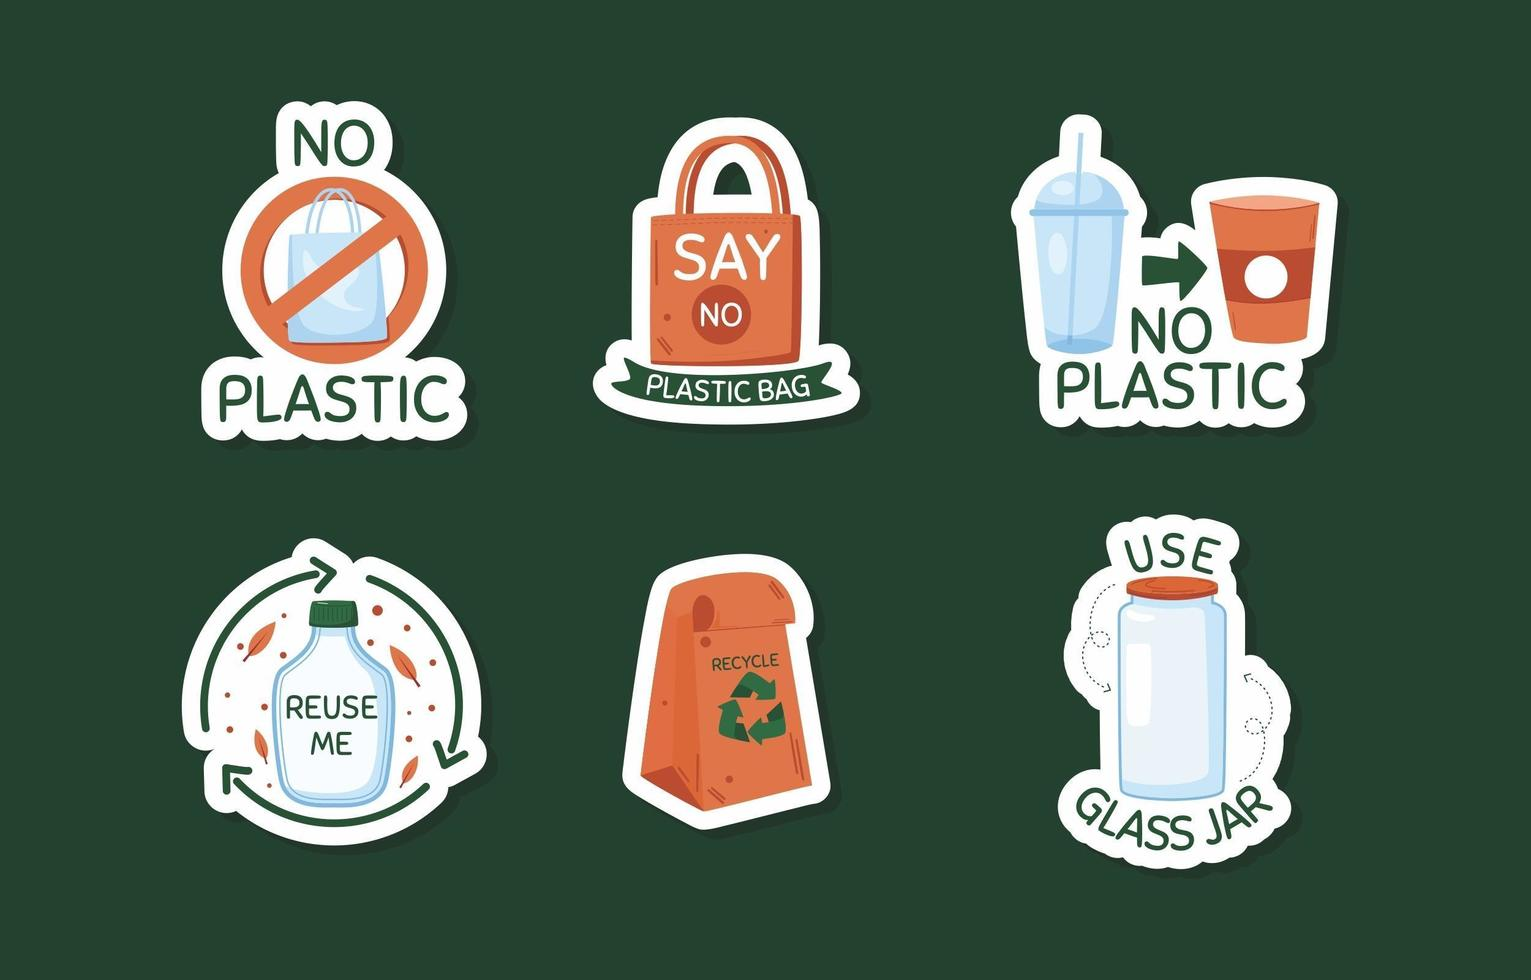 No Plastic Doodle Sticker Collection vector